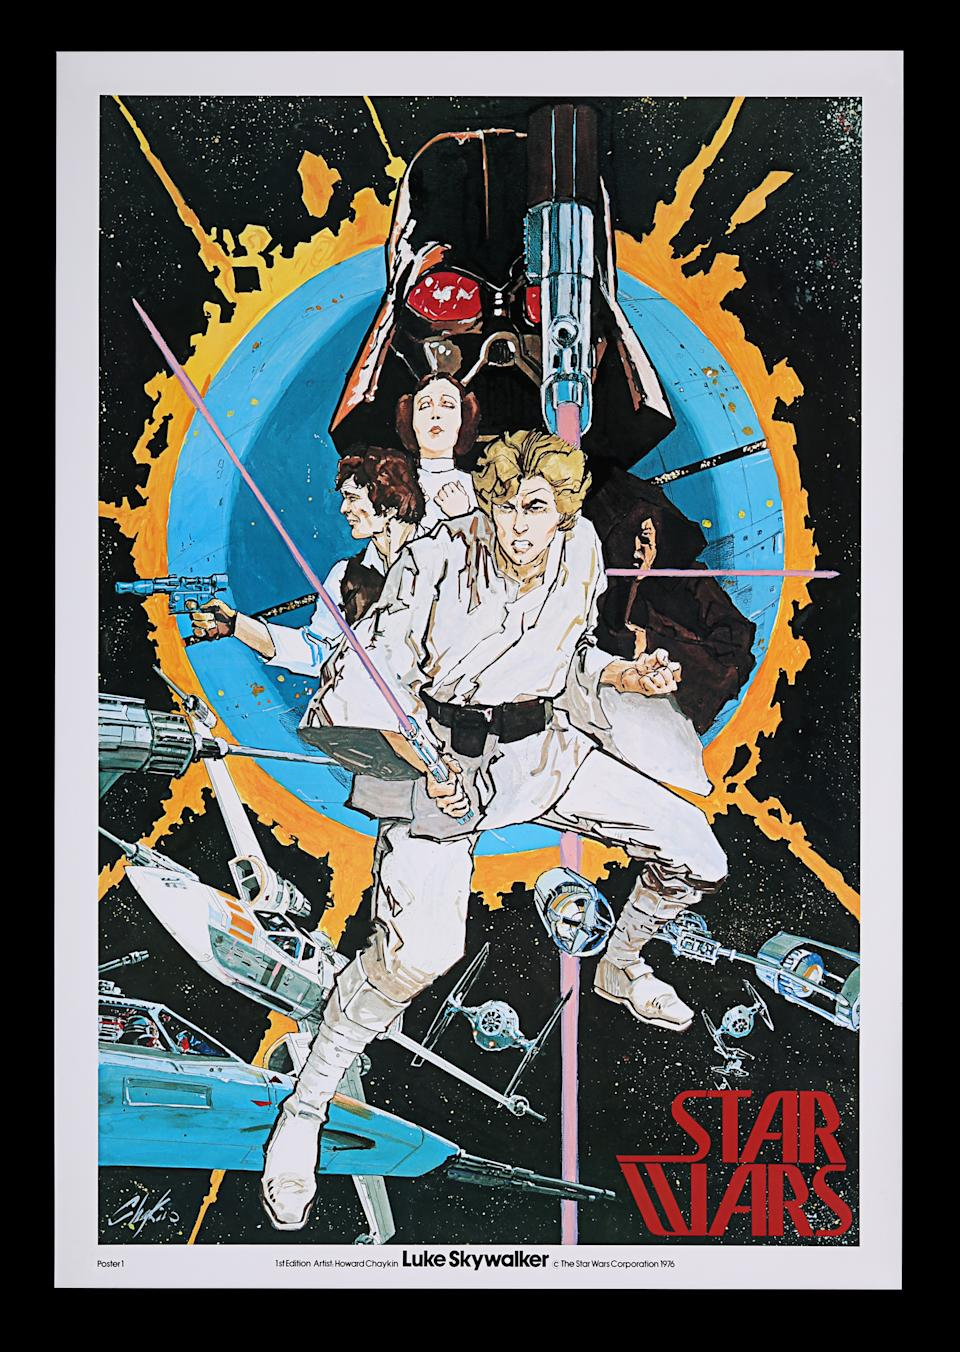 <p>STAR WARS: A NEW HOPE (1977) - Richard Edlund Archive: Special One-Sheet Style Poster, 1976 est. £1,500 - £2,500 (Prop Store)</p>